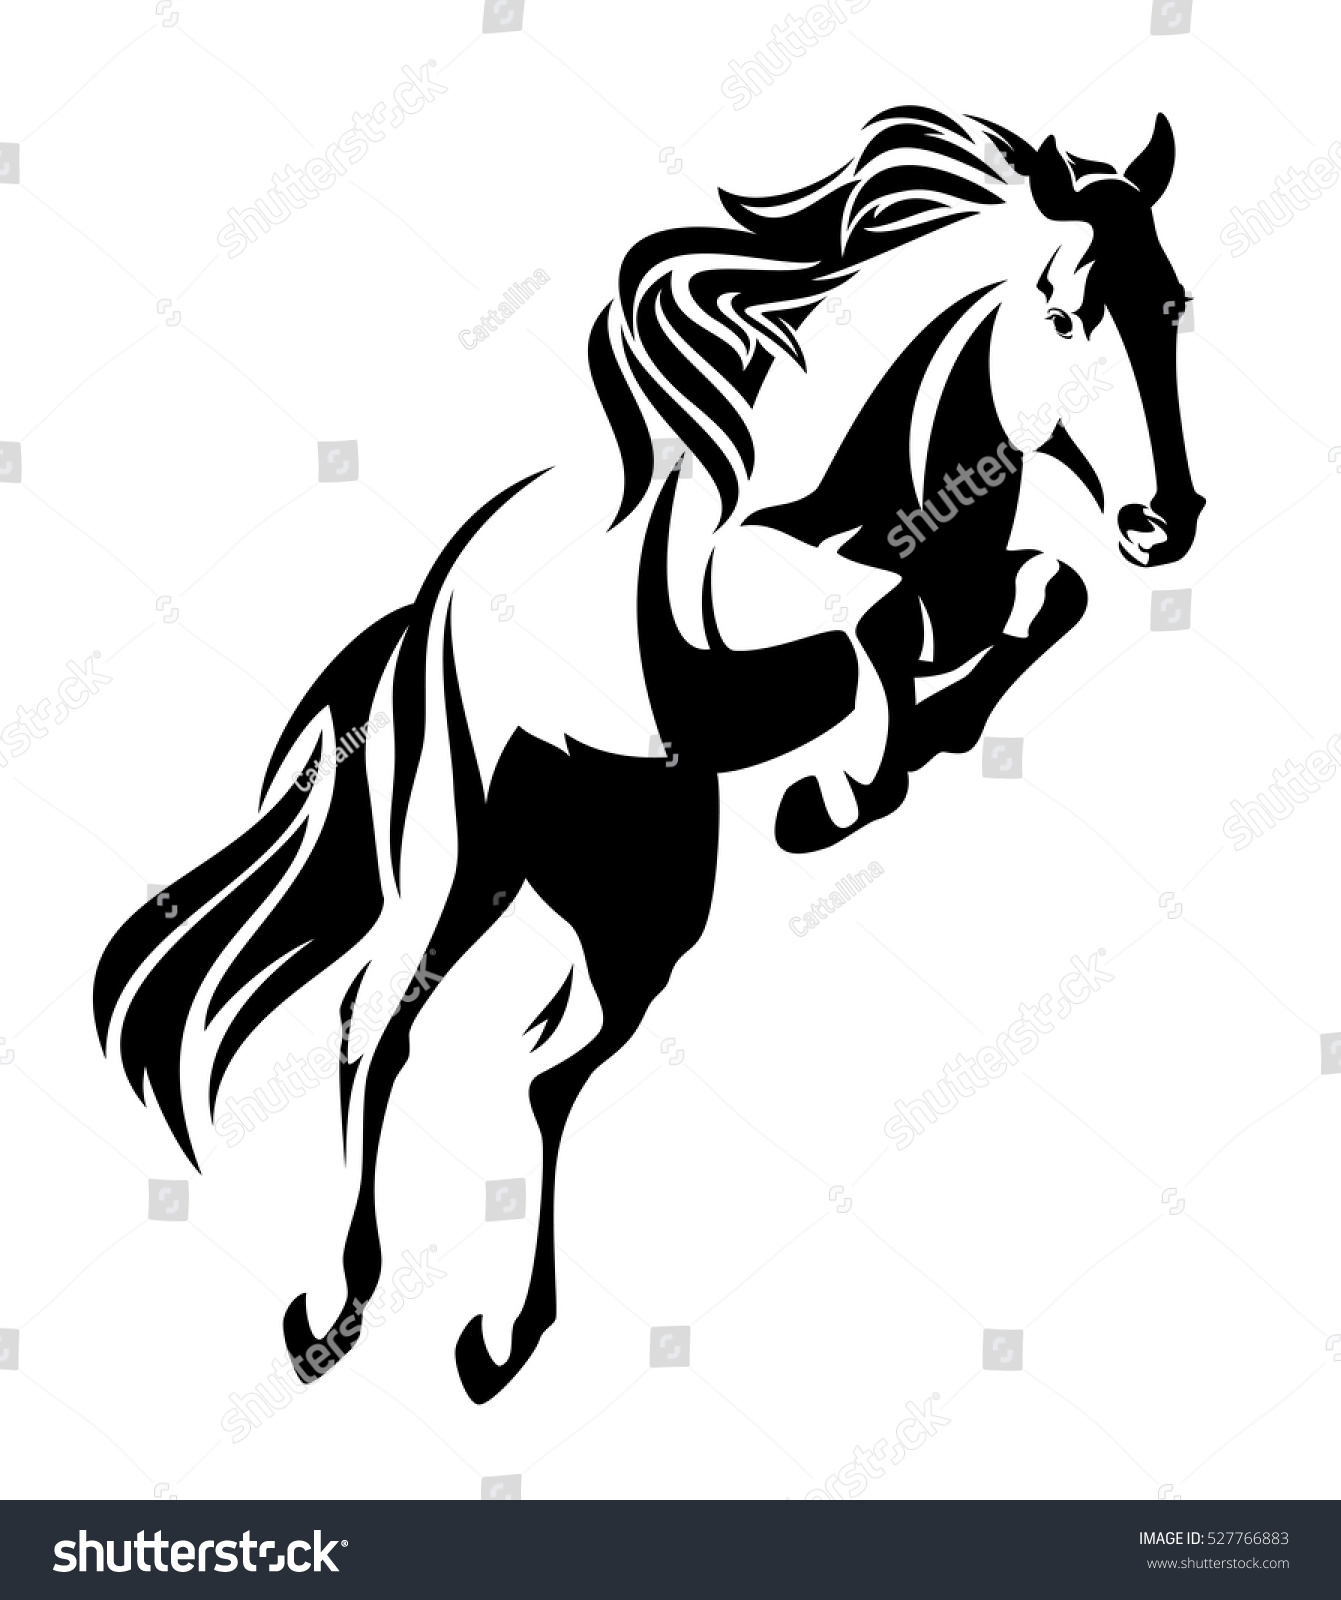 Jumping Horse Black White Vector Outline Stock Vector Royalty Free 527766883